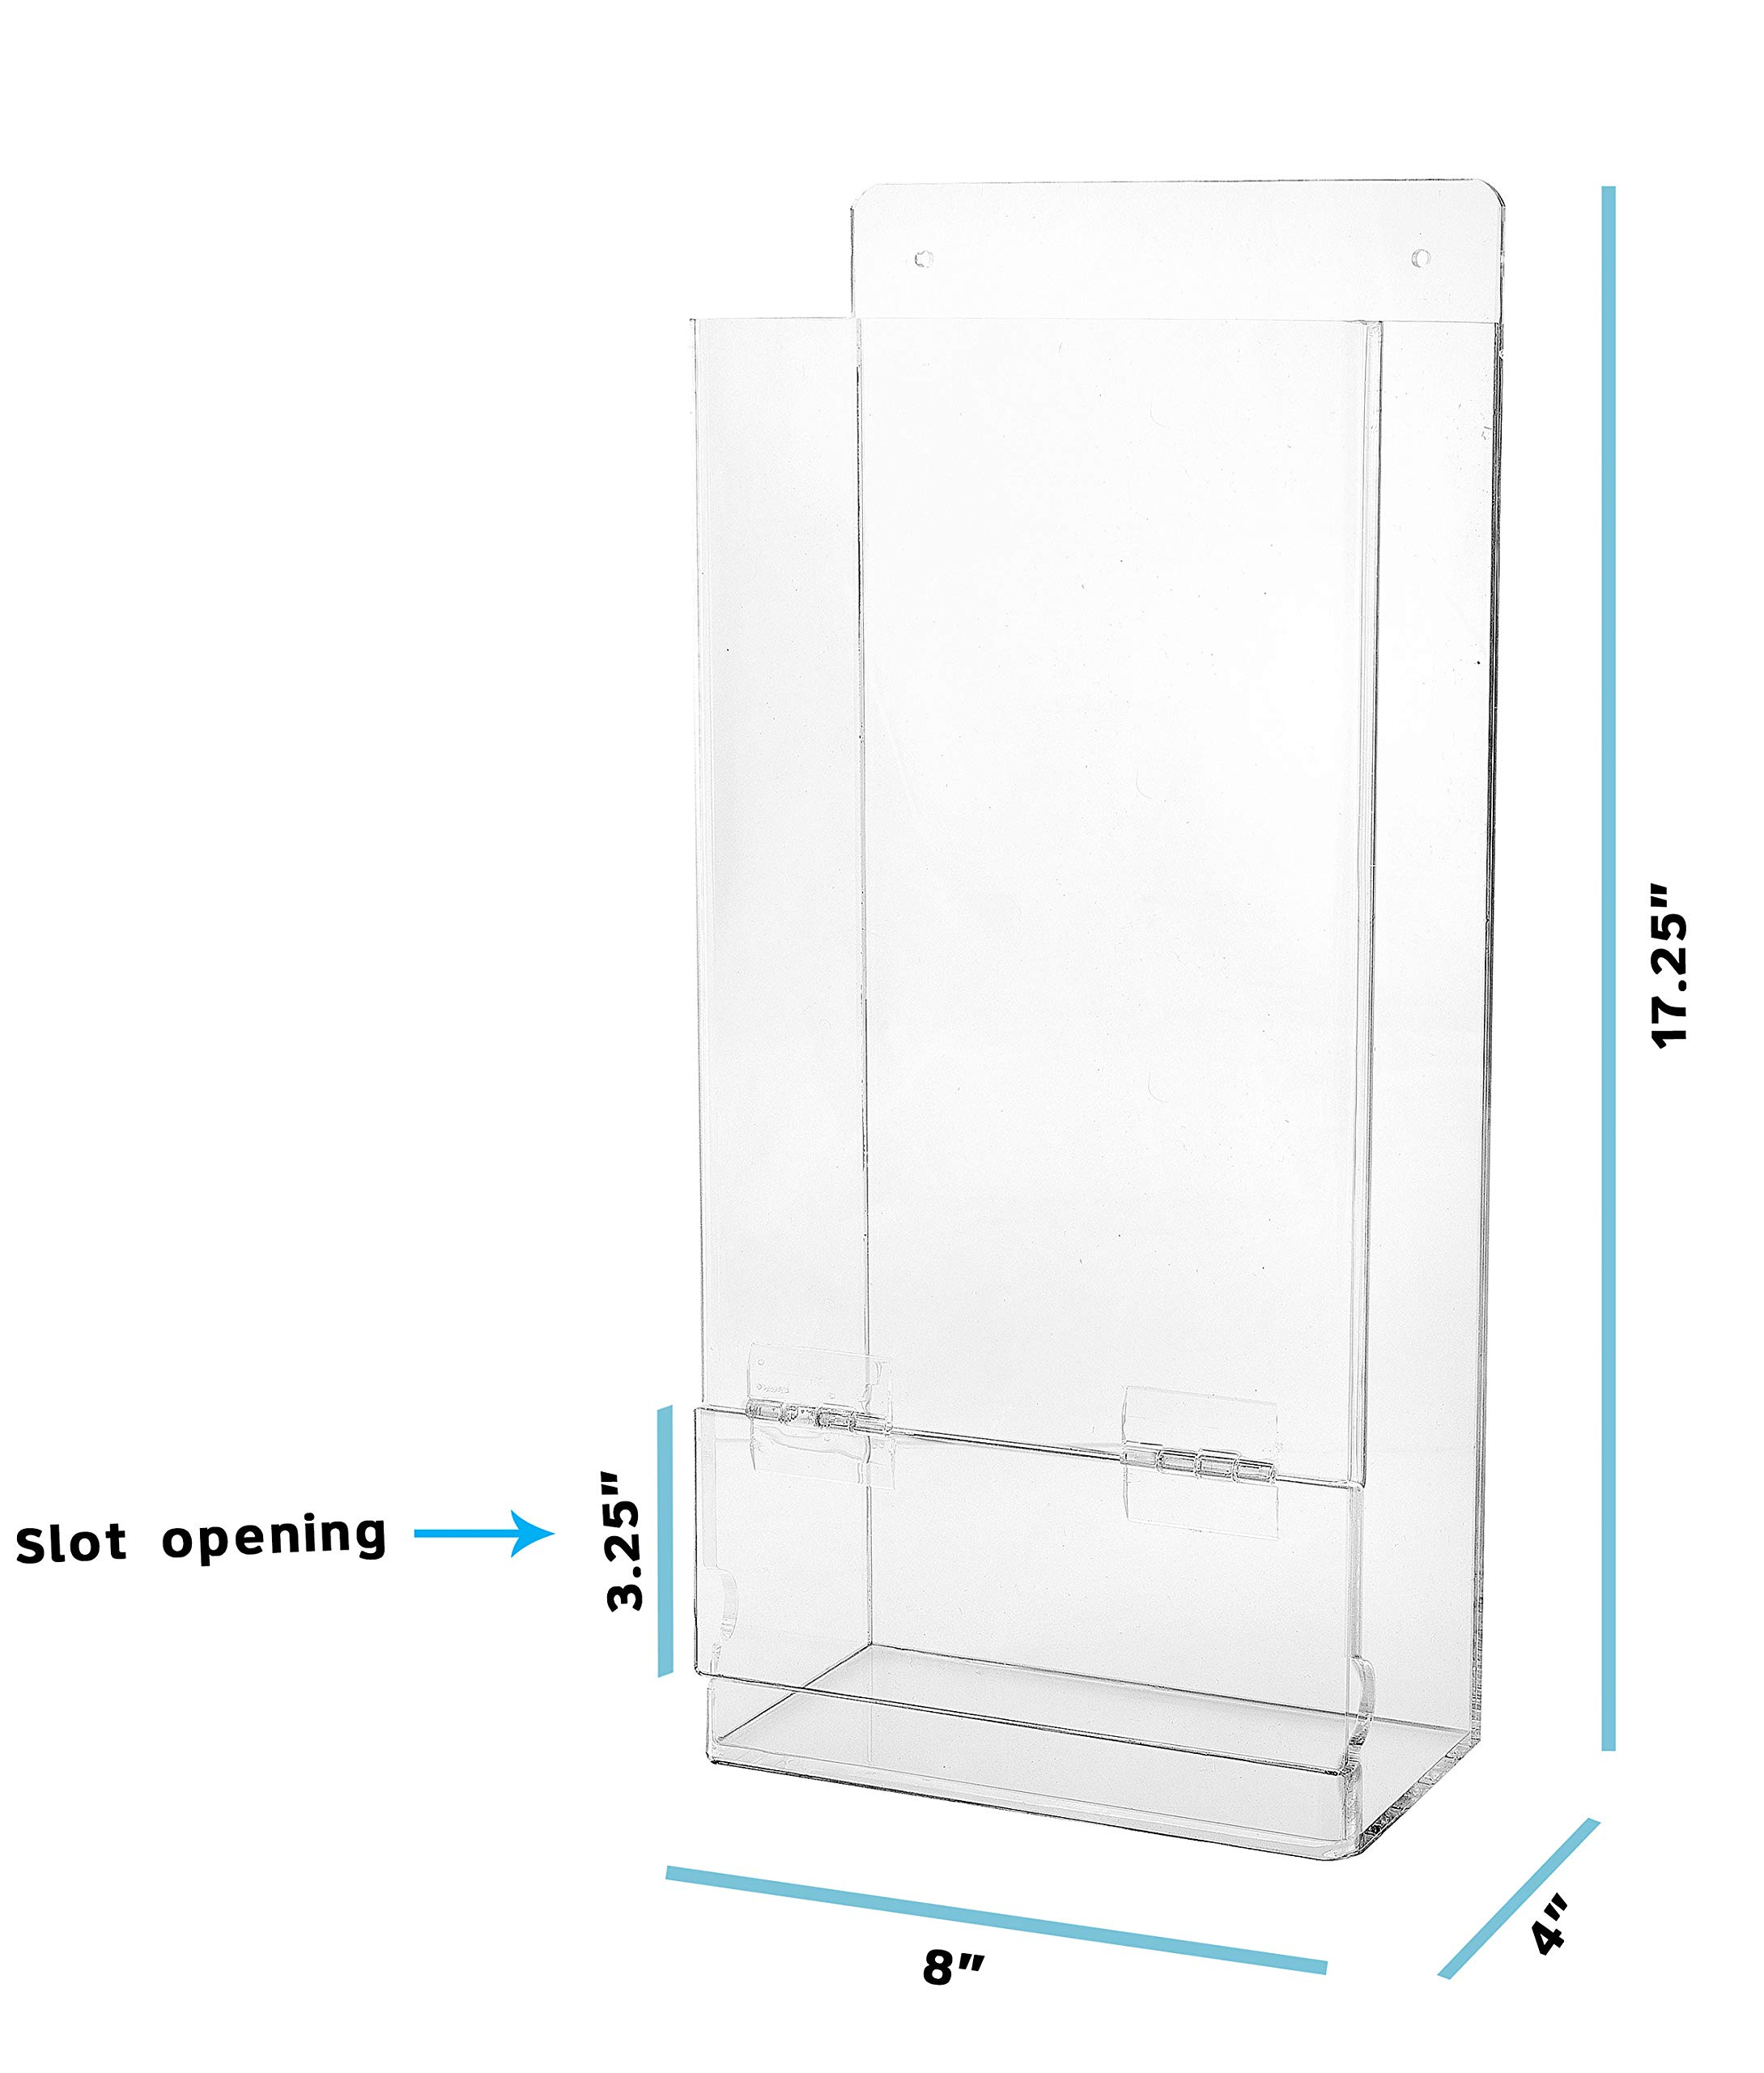 AdirOffice Safety Glasses and Glove Dispenser - Column Type Wall Mounted Acrylic Receptacle - Easy Access Organizer for Laboratory & Workplace Use by AdirOffice (Image #5)